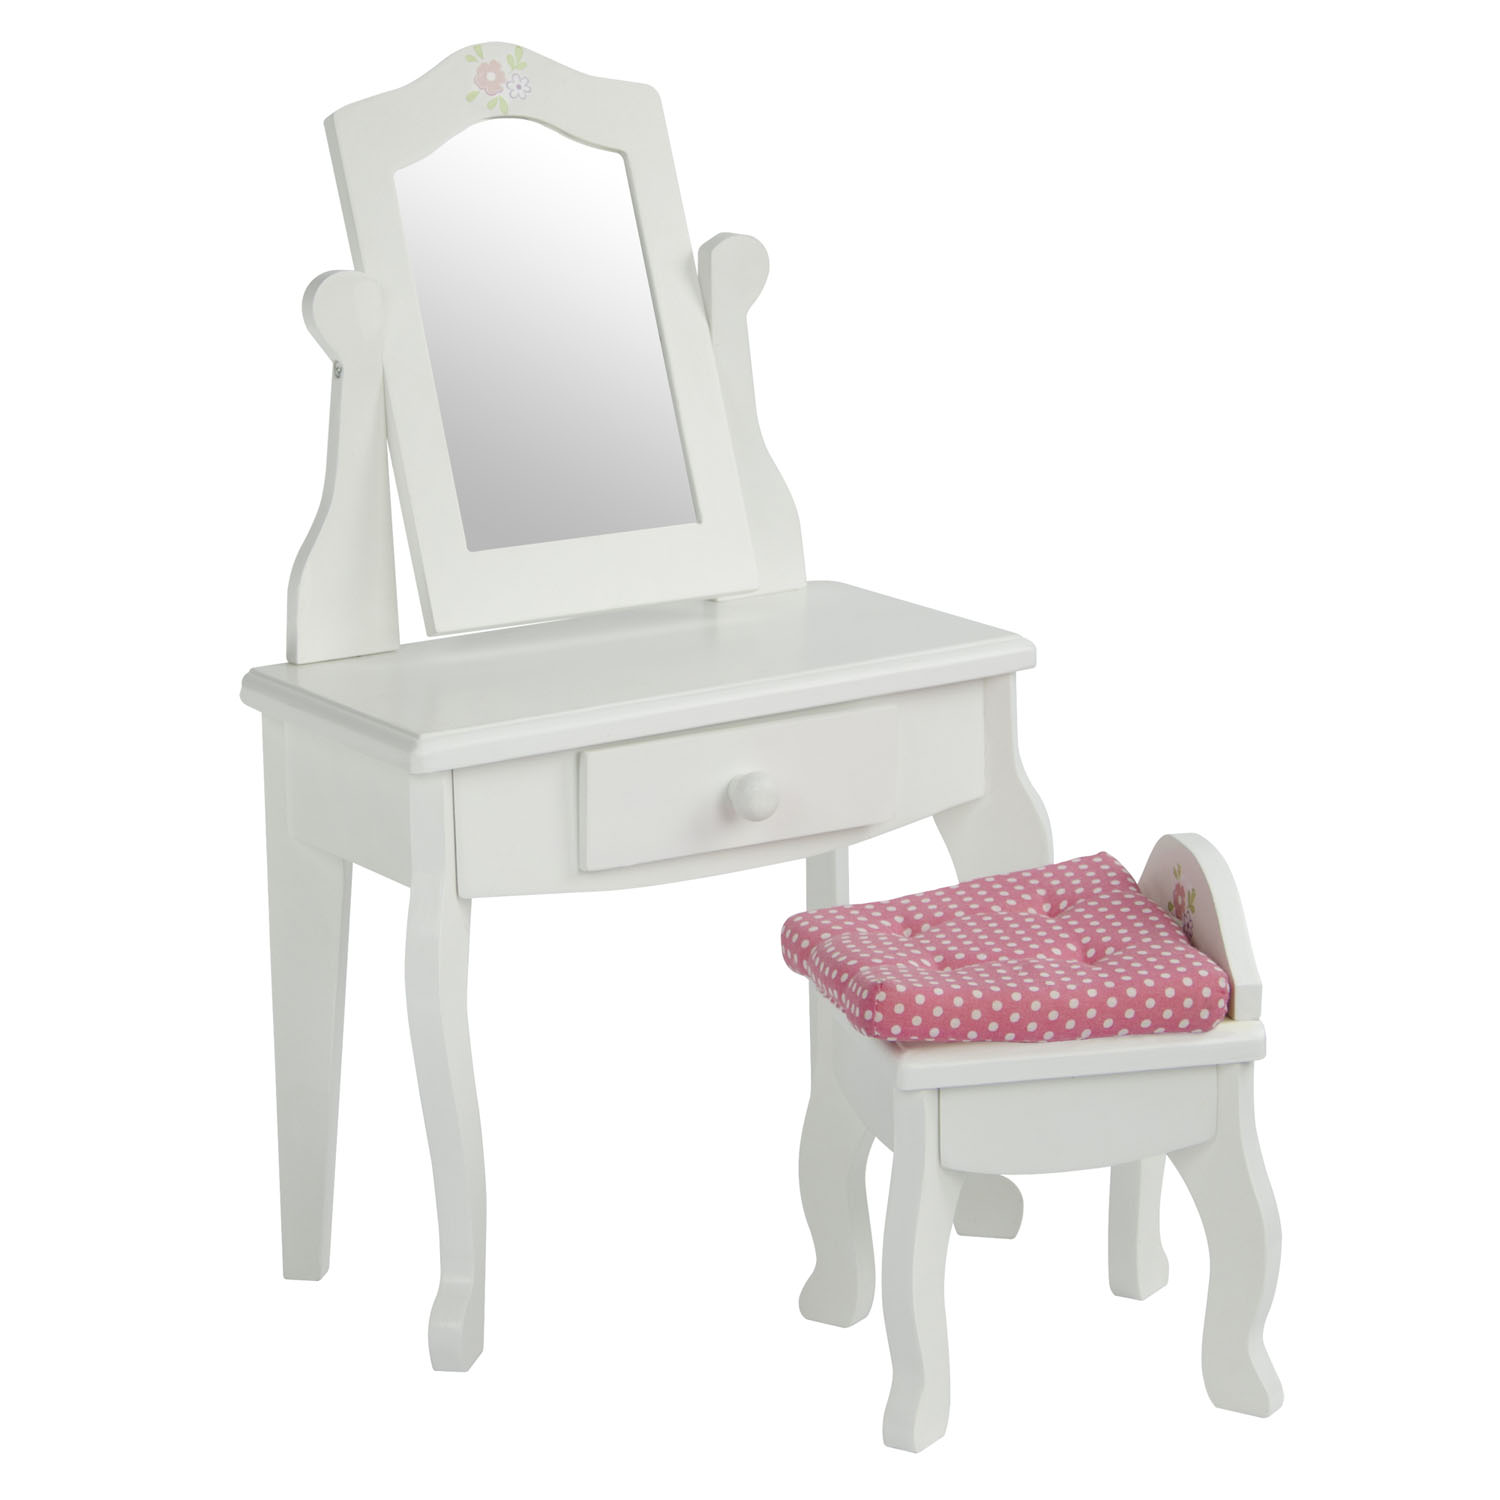 "Olivia's Little World Little Princess 18"" Doll Furniture - Vanity Table and Stool Set"